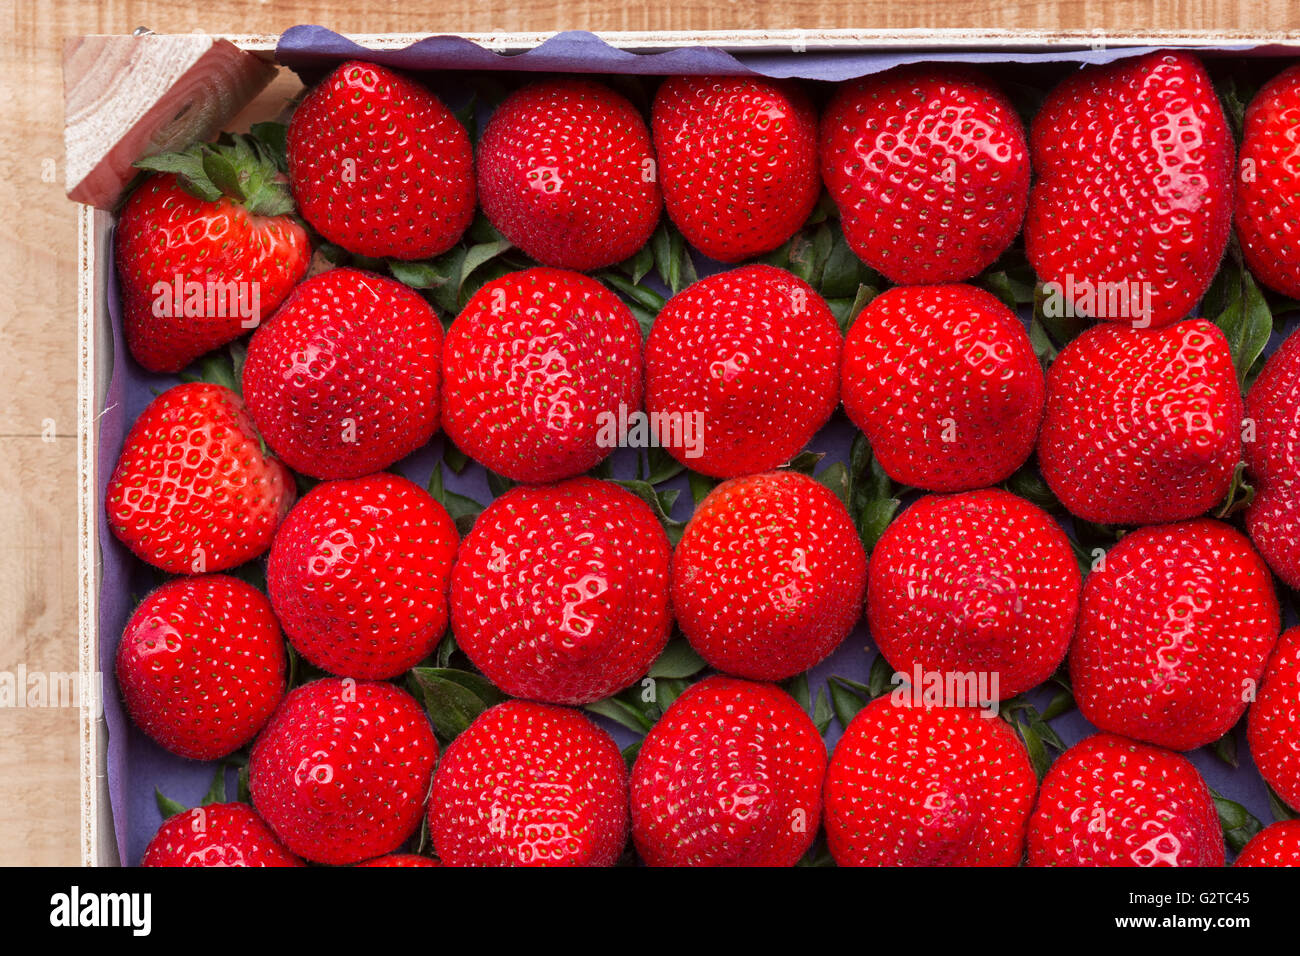 Strawberries in a food container - Stock Image